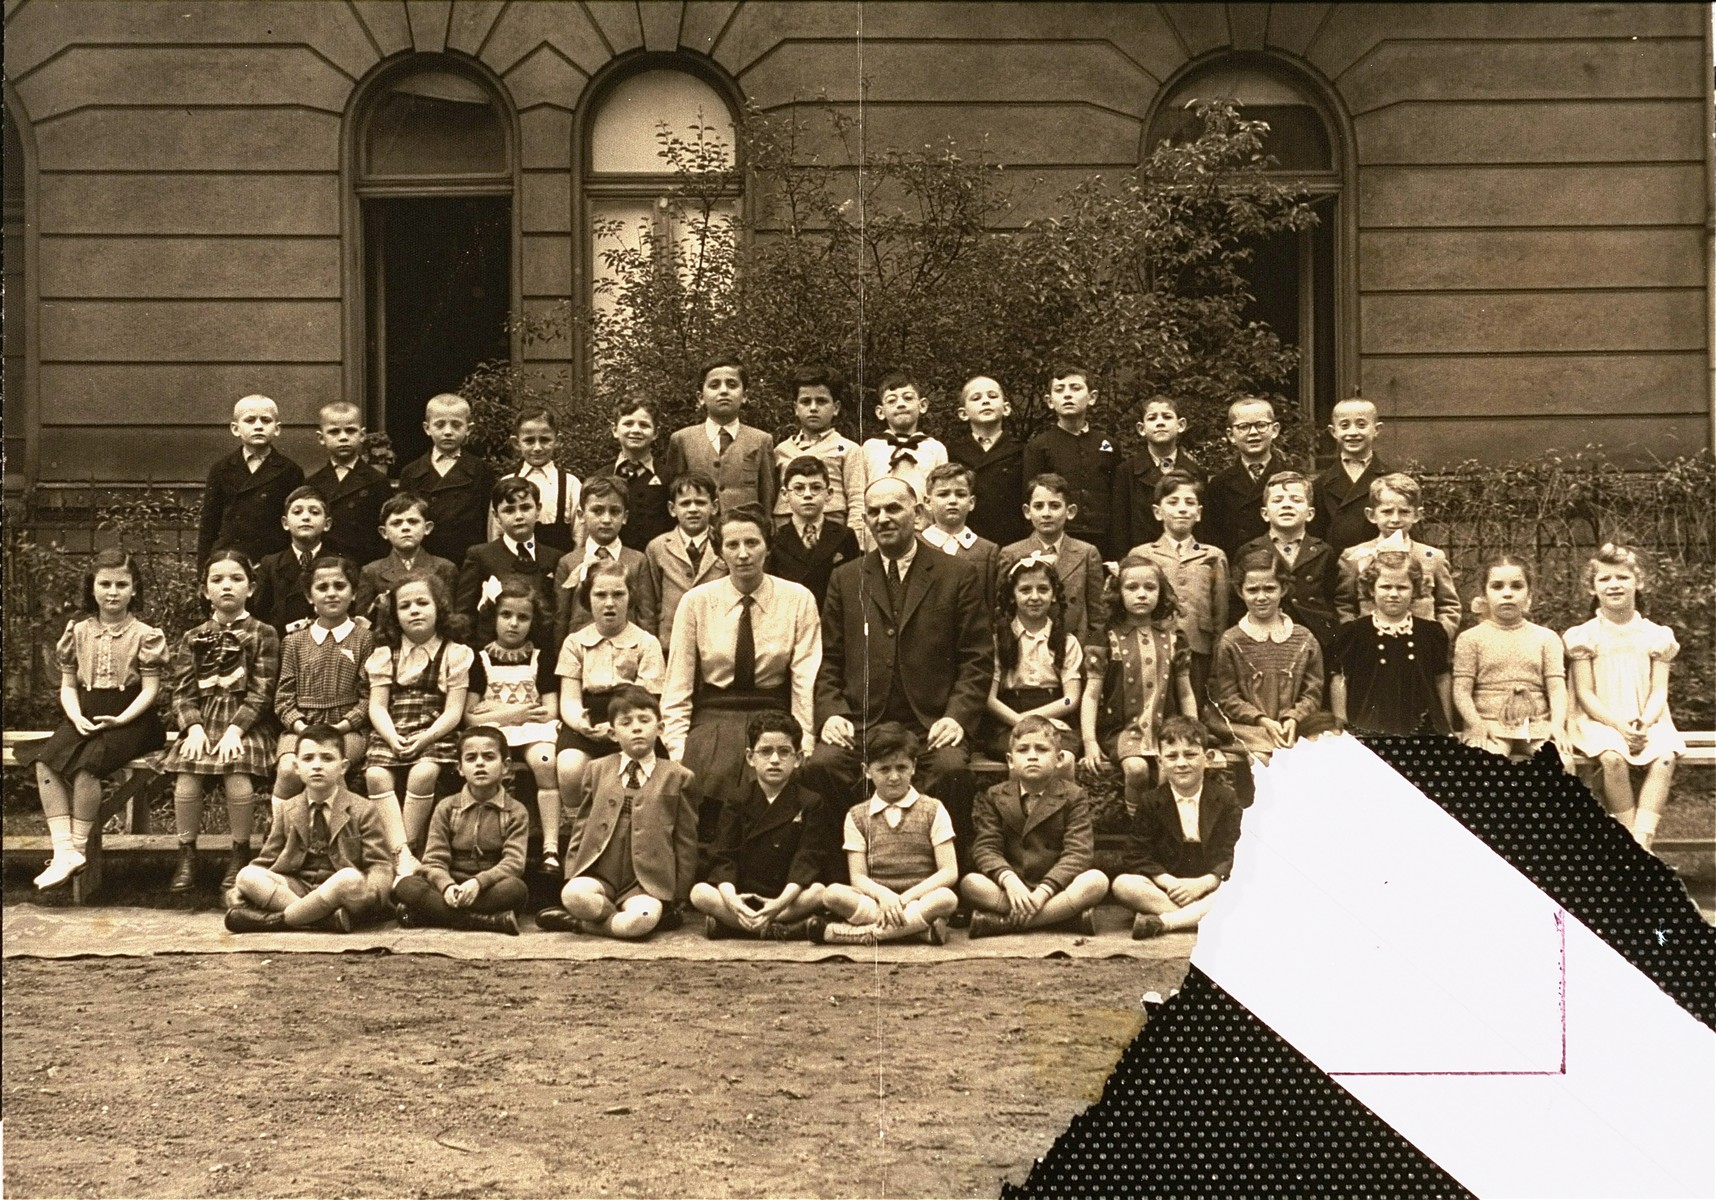 Class photograph of the first grade at the Jewish Boys' Orphanage School of Budapest (Zsido Fiu Arvahaz), a Jewish primary school attended by both orphaned and non-orphaned children.